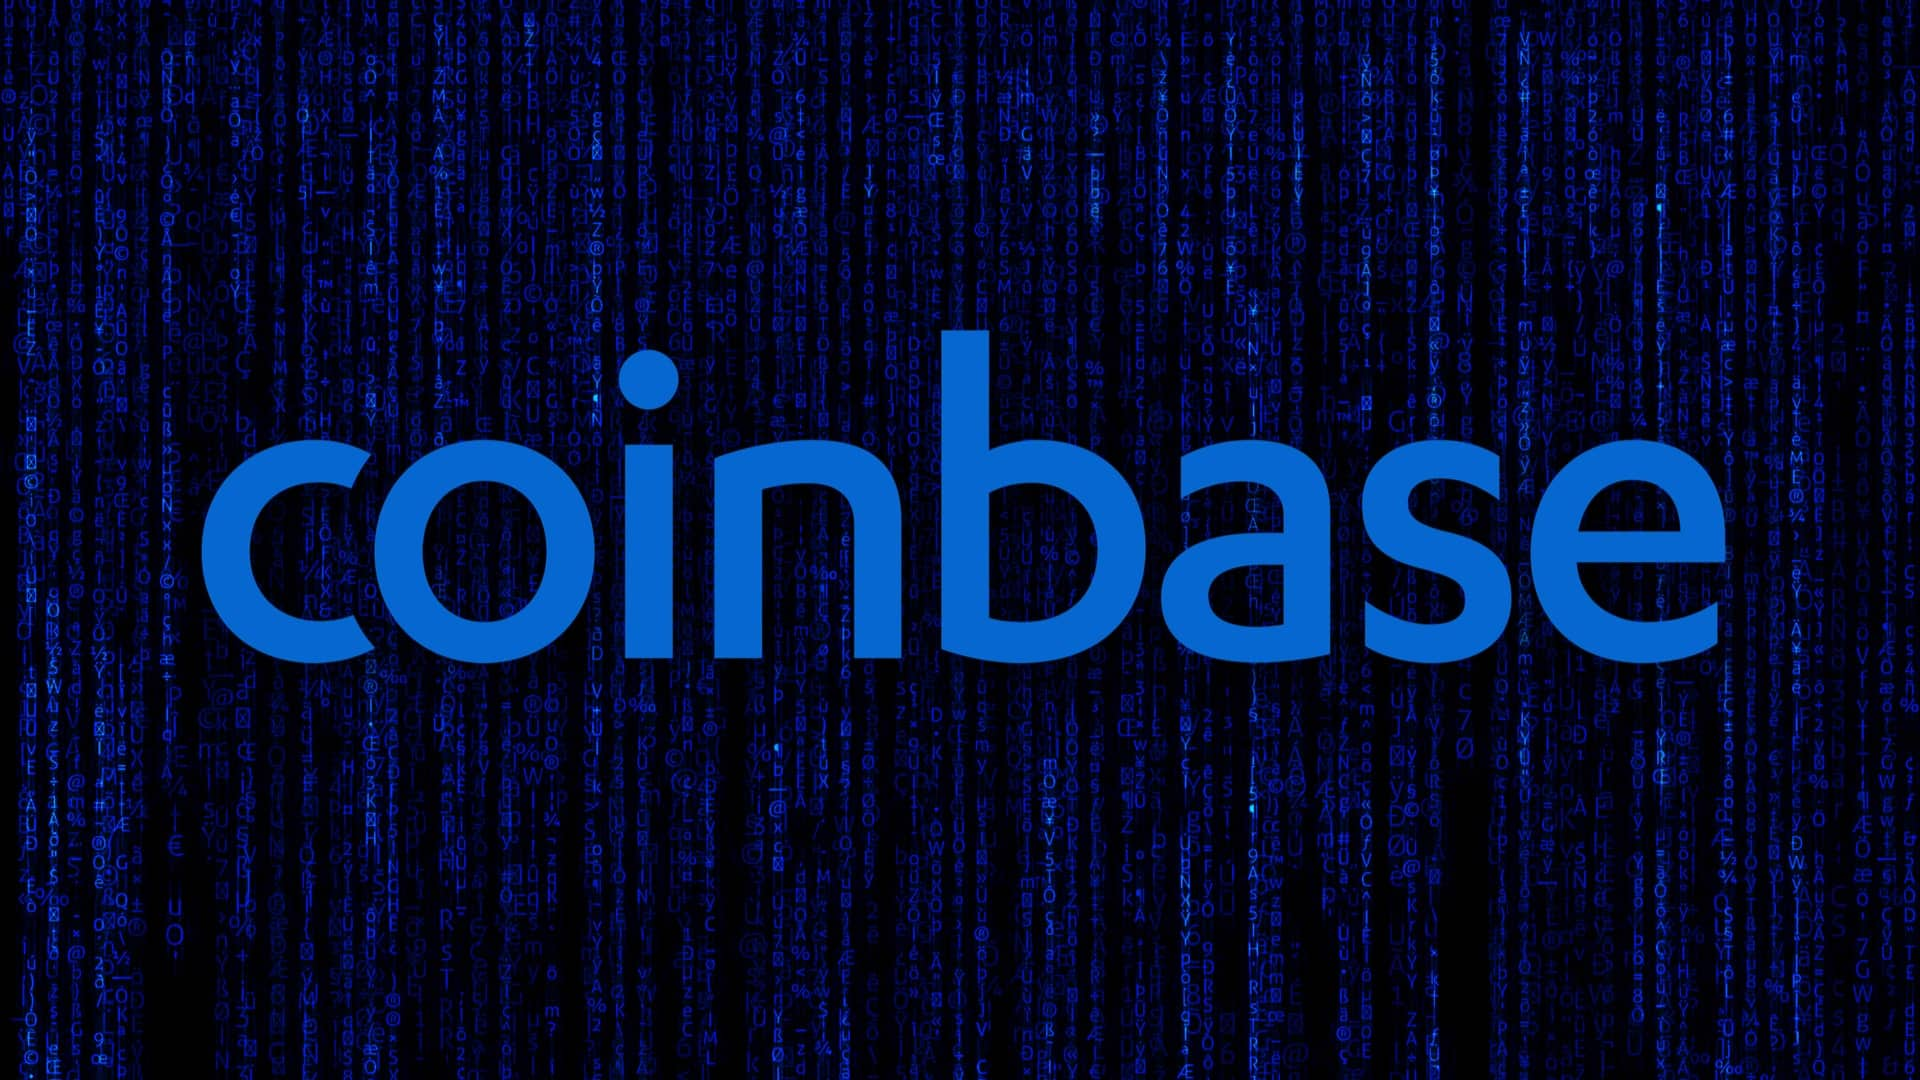 Coinbase becomes the official partner of the NBA